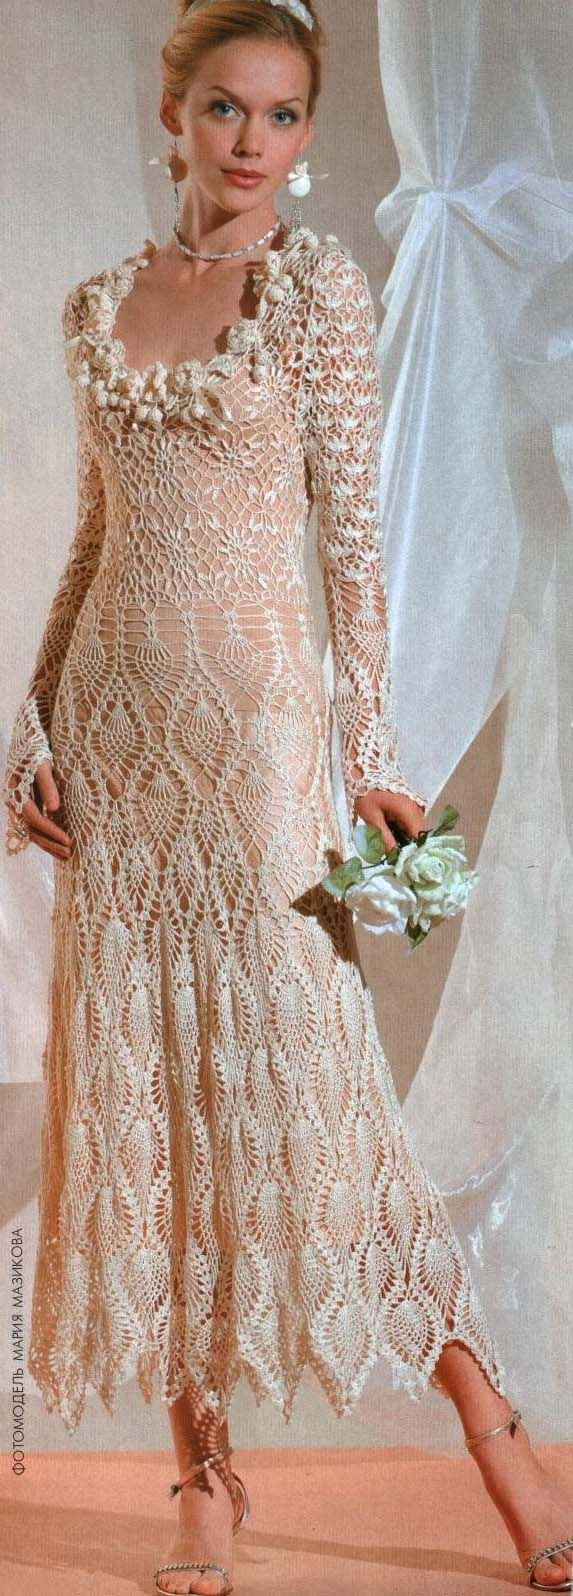 crochet wedding dress diagram crochet wedding dress diagram pattern can be translated ccuart Image collections